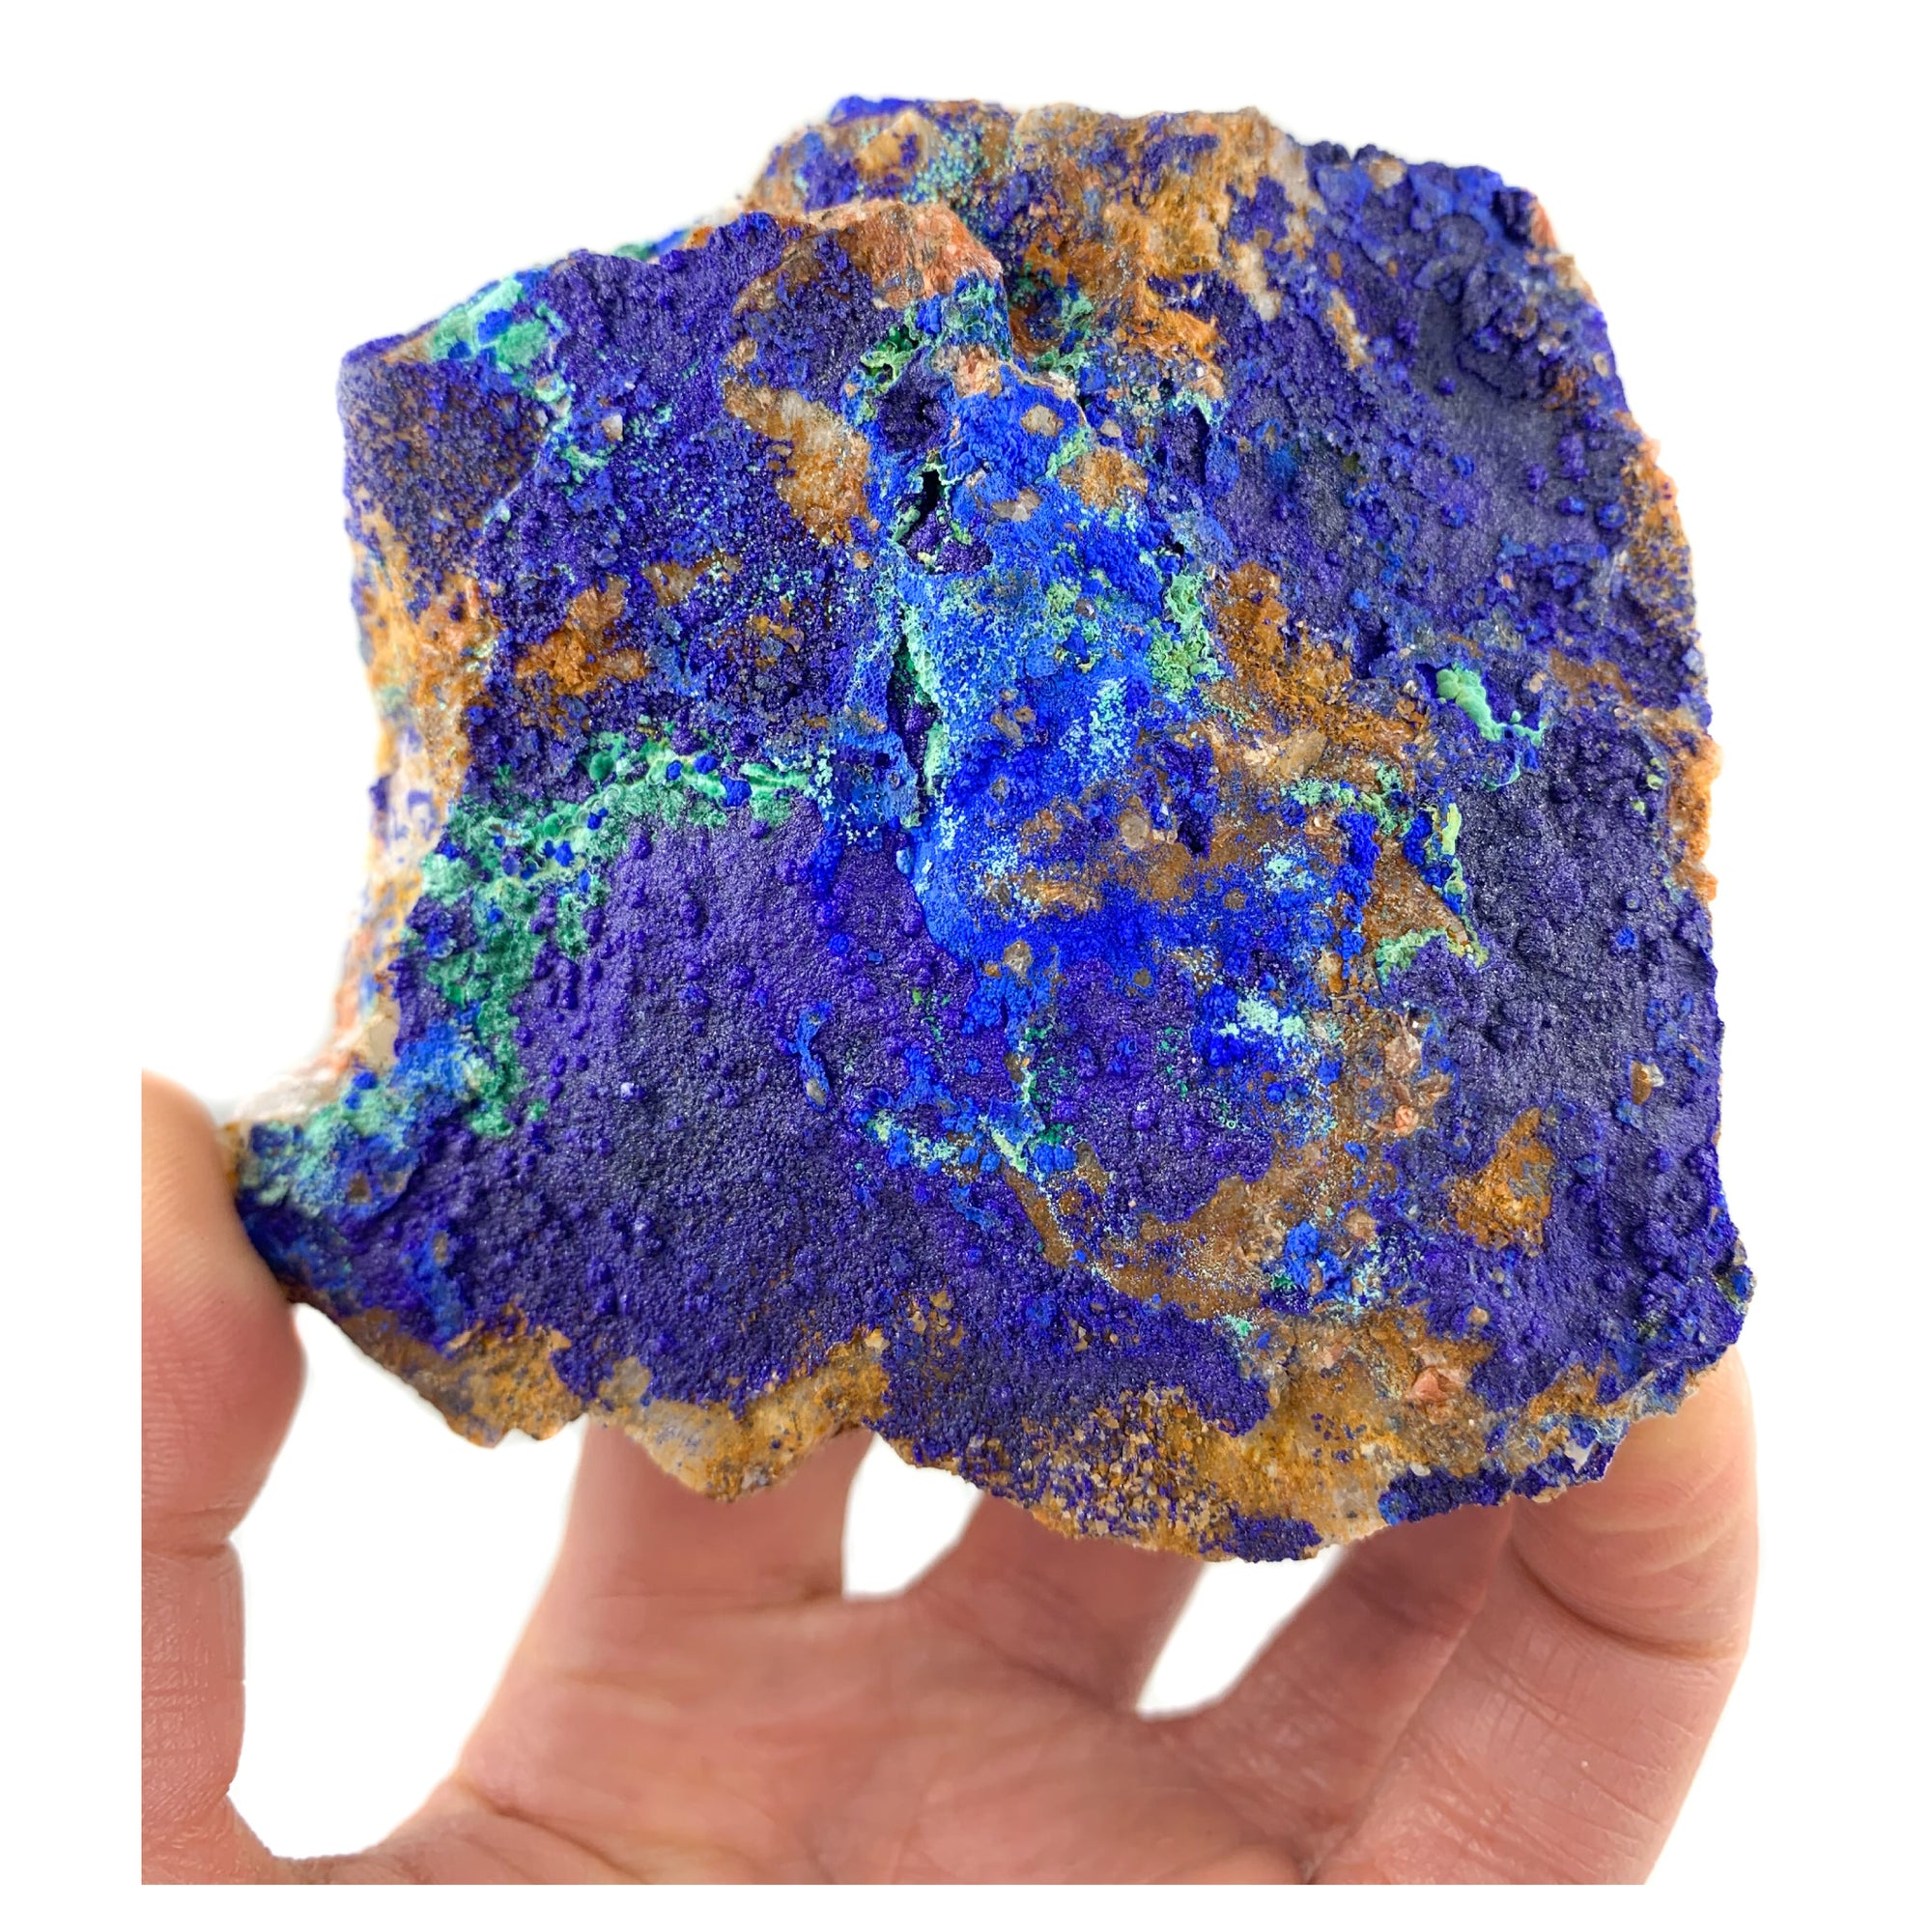 Azurite and Malachite Mineral Specimen from Morocco